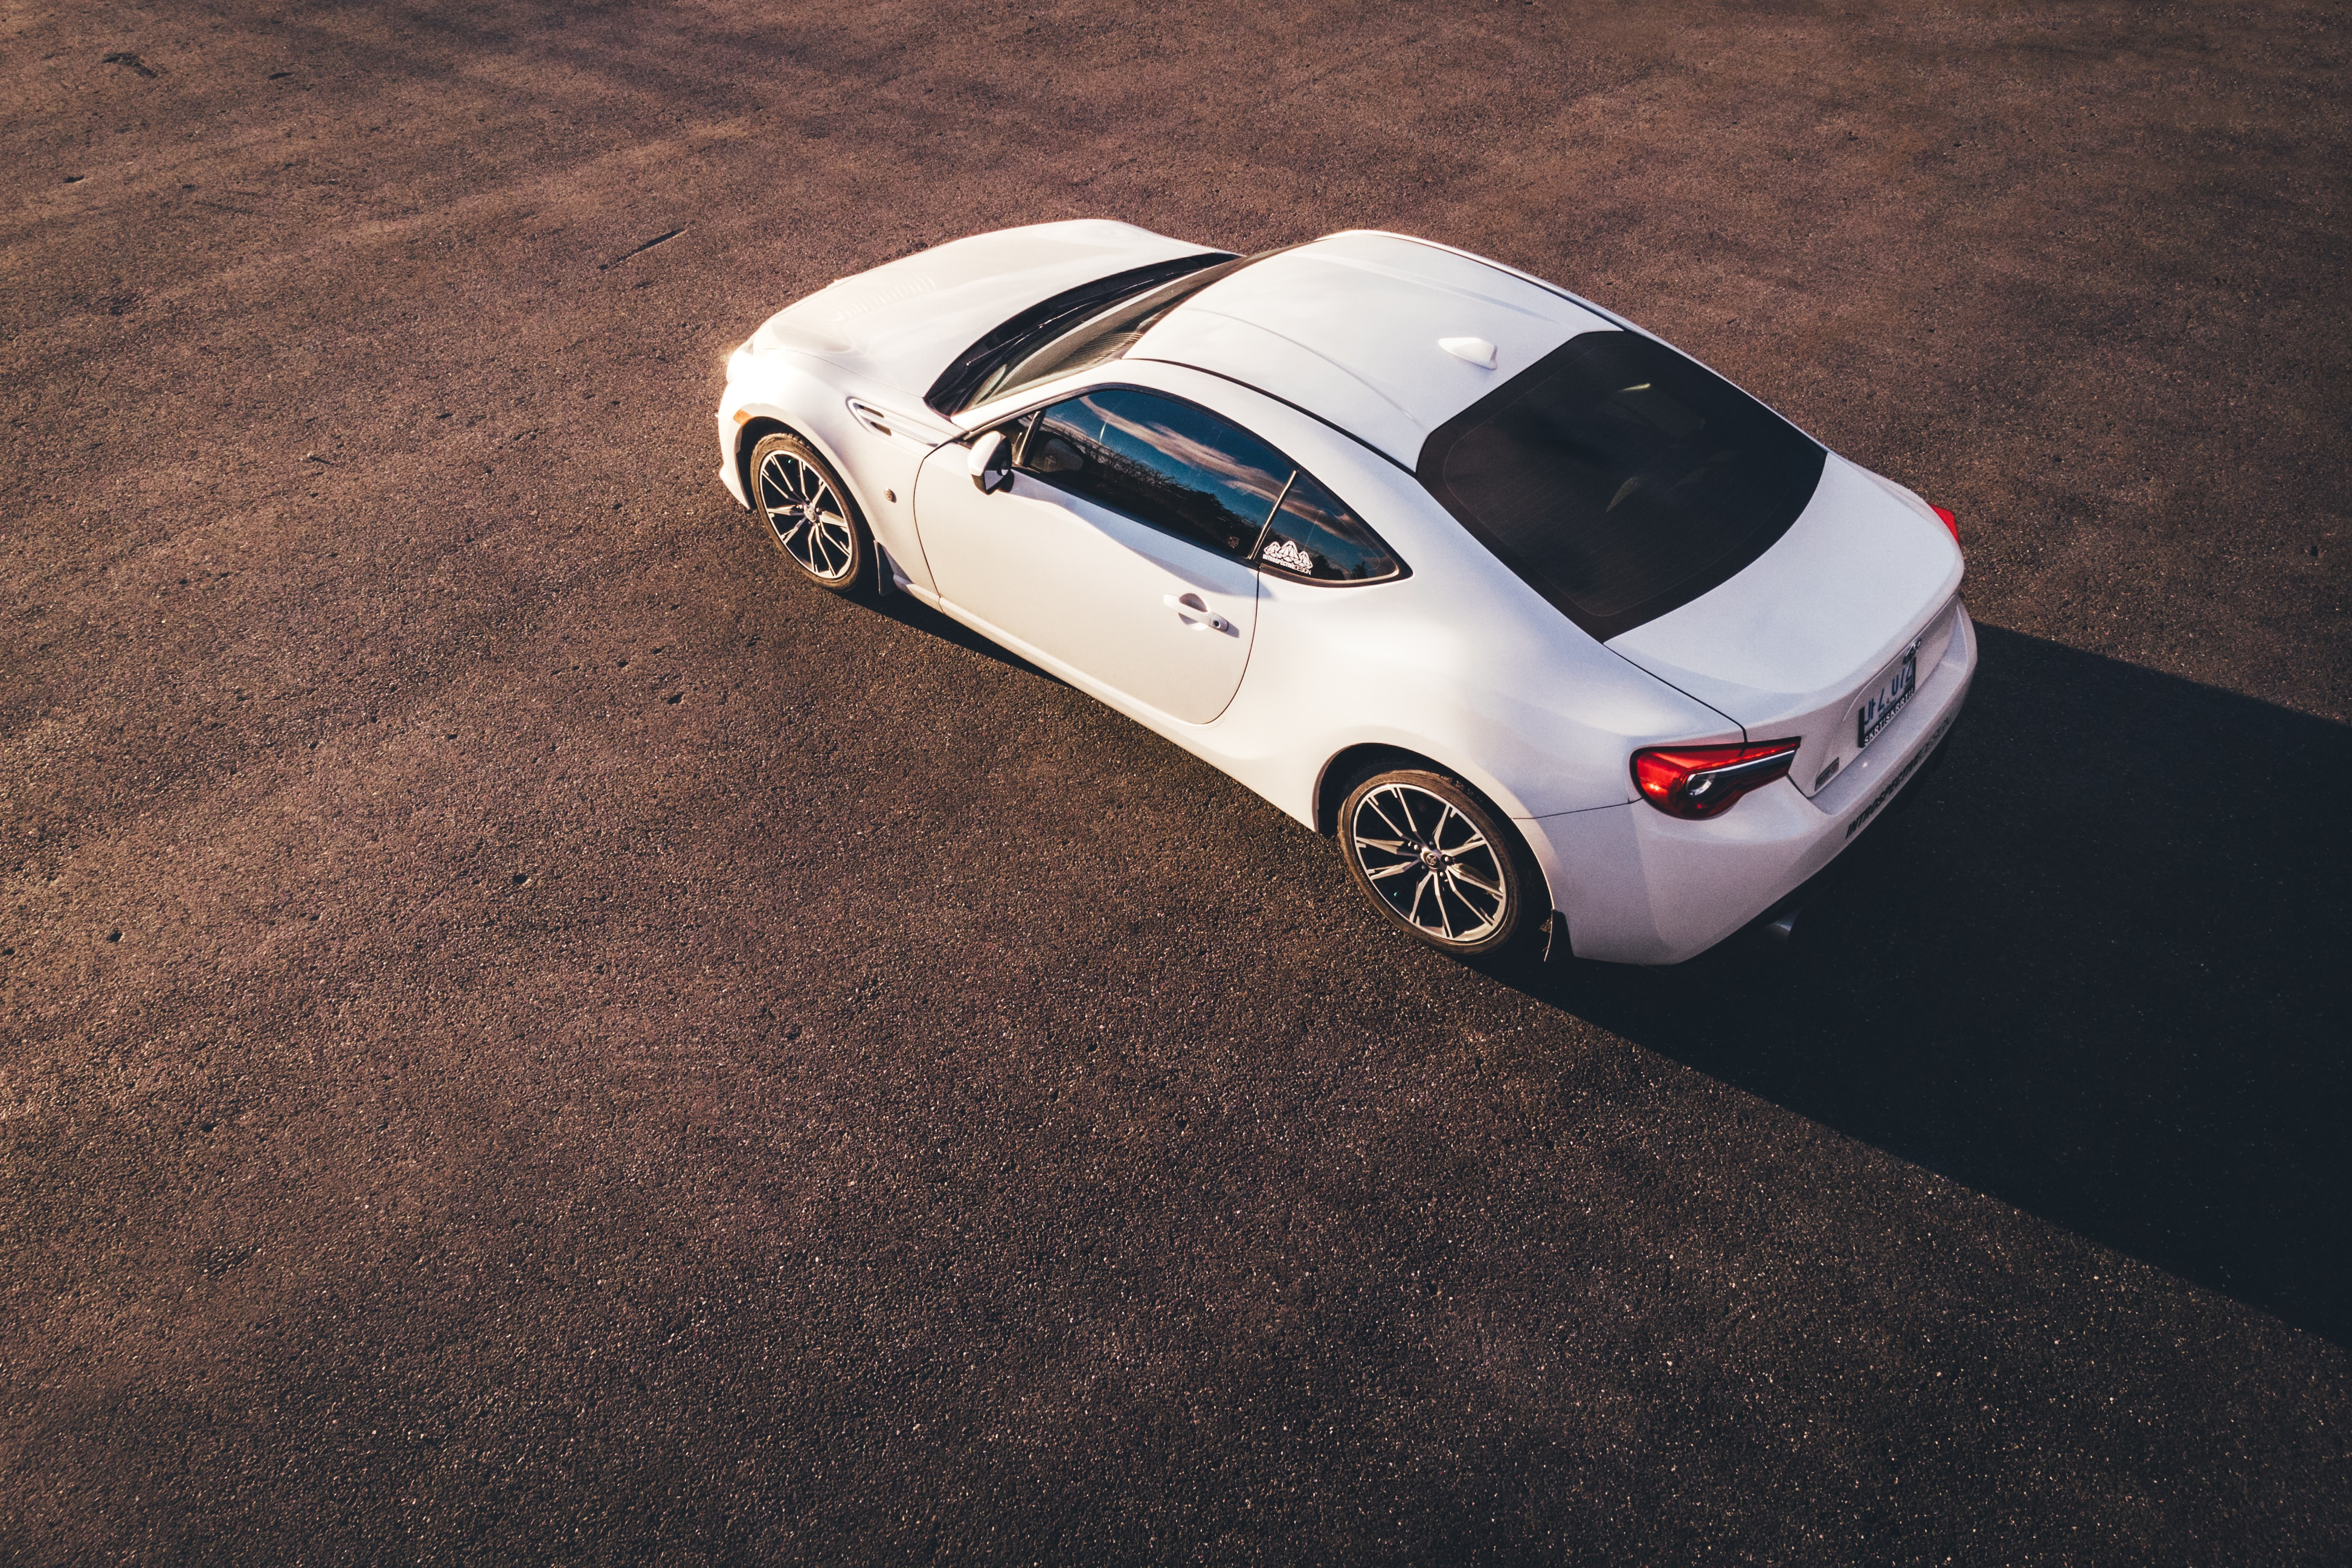 An overhead view of a stylsh white sports coupe.